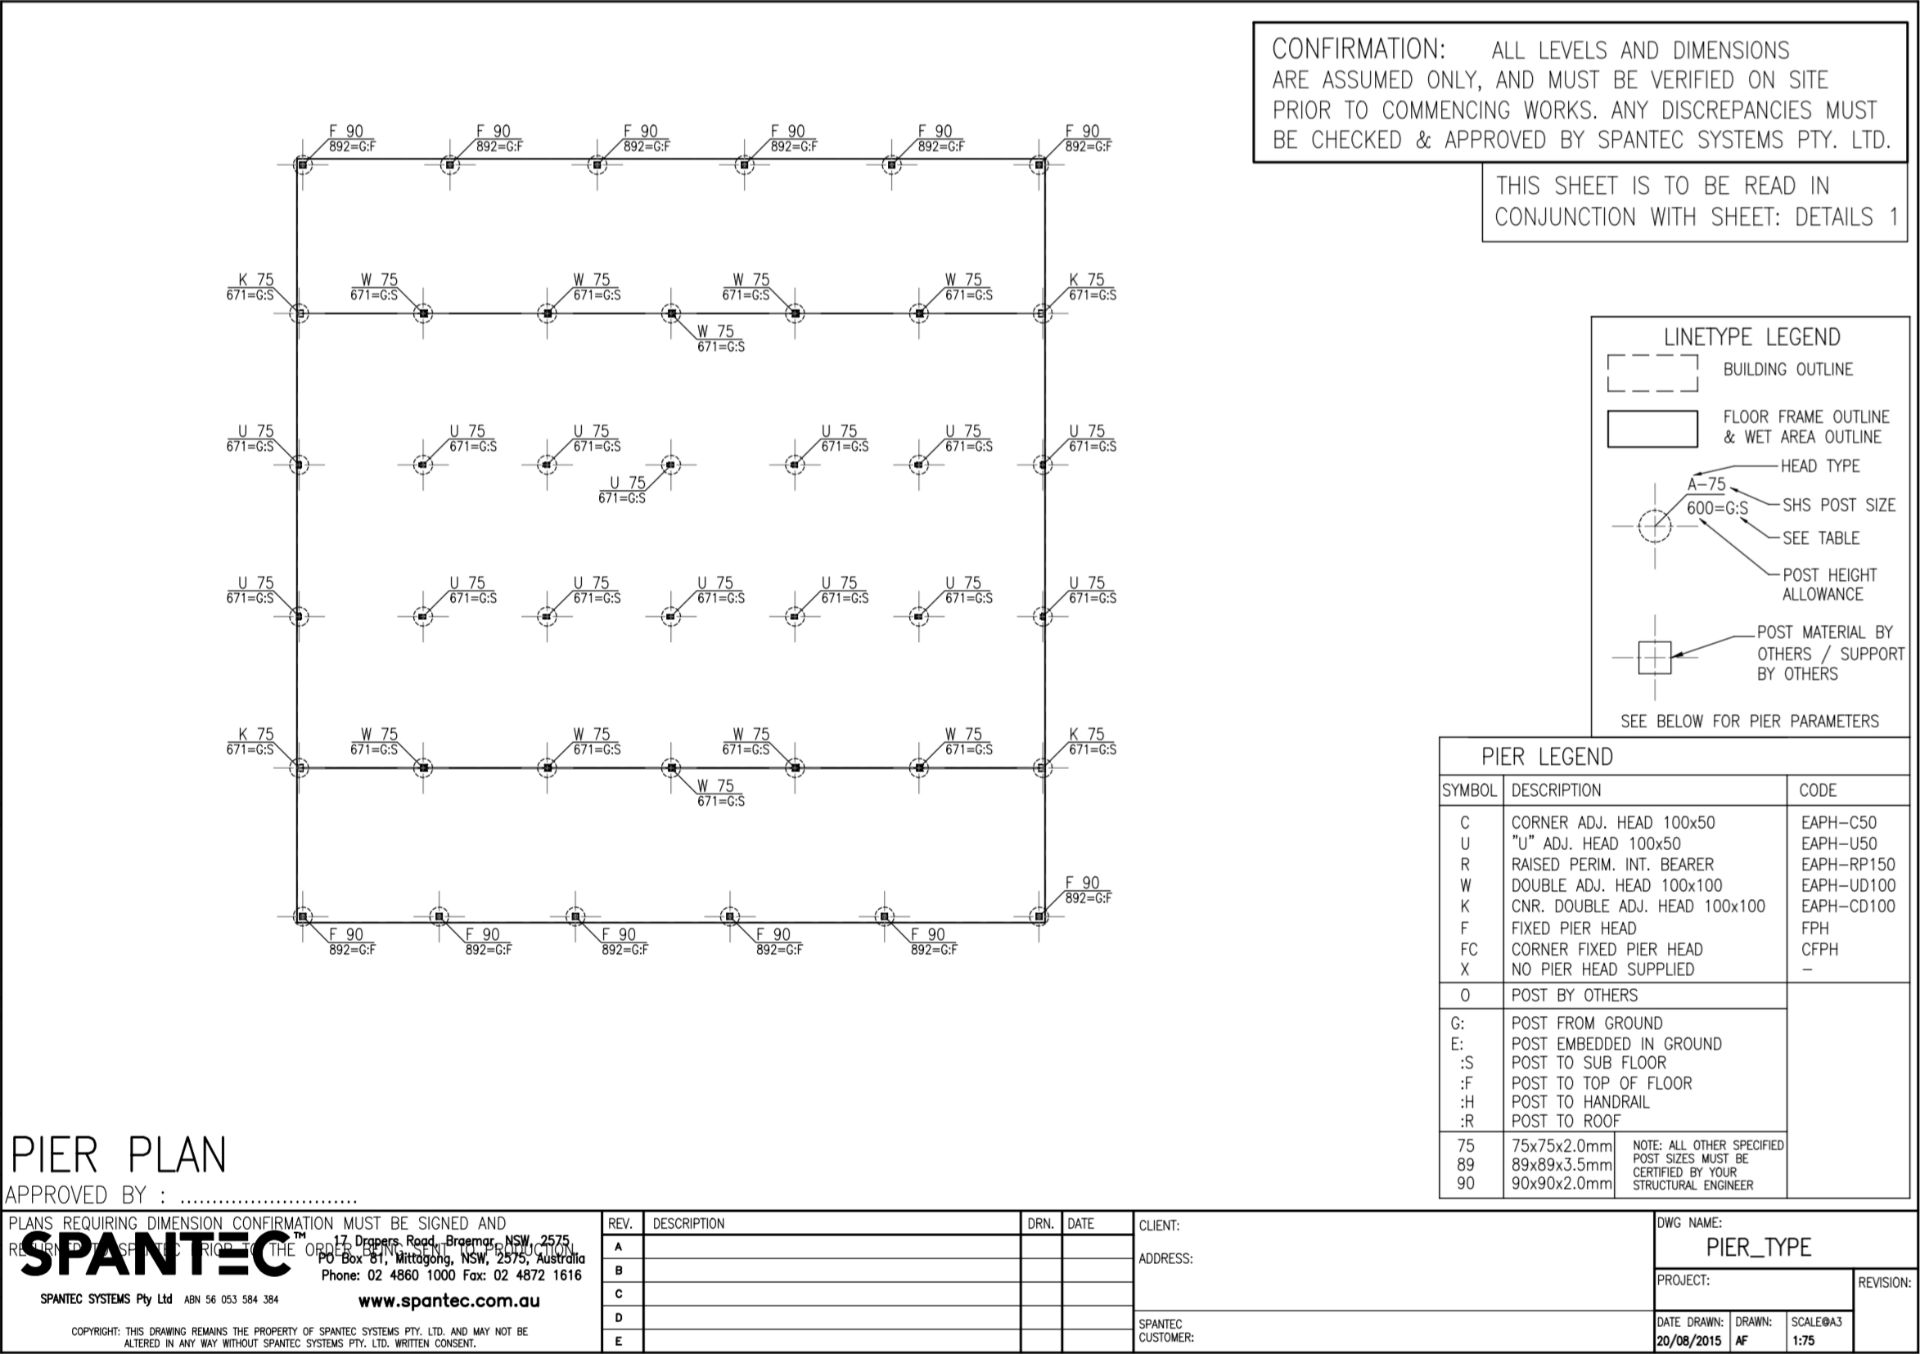 Example of a Pier Plan drawing produced using CAD drafting software